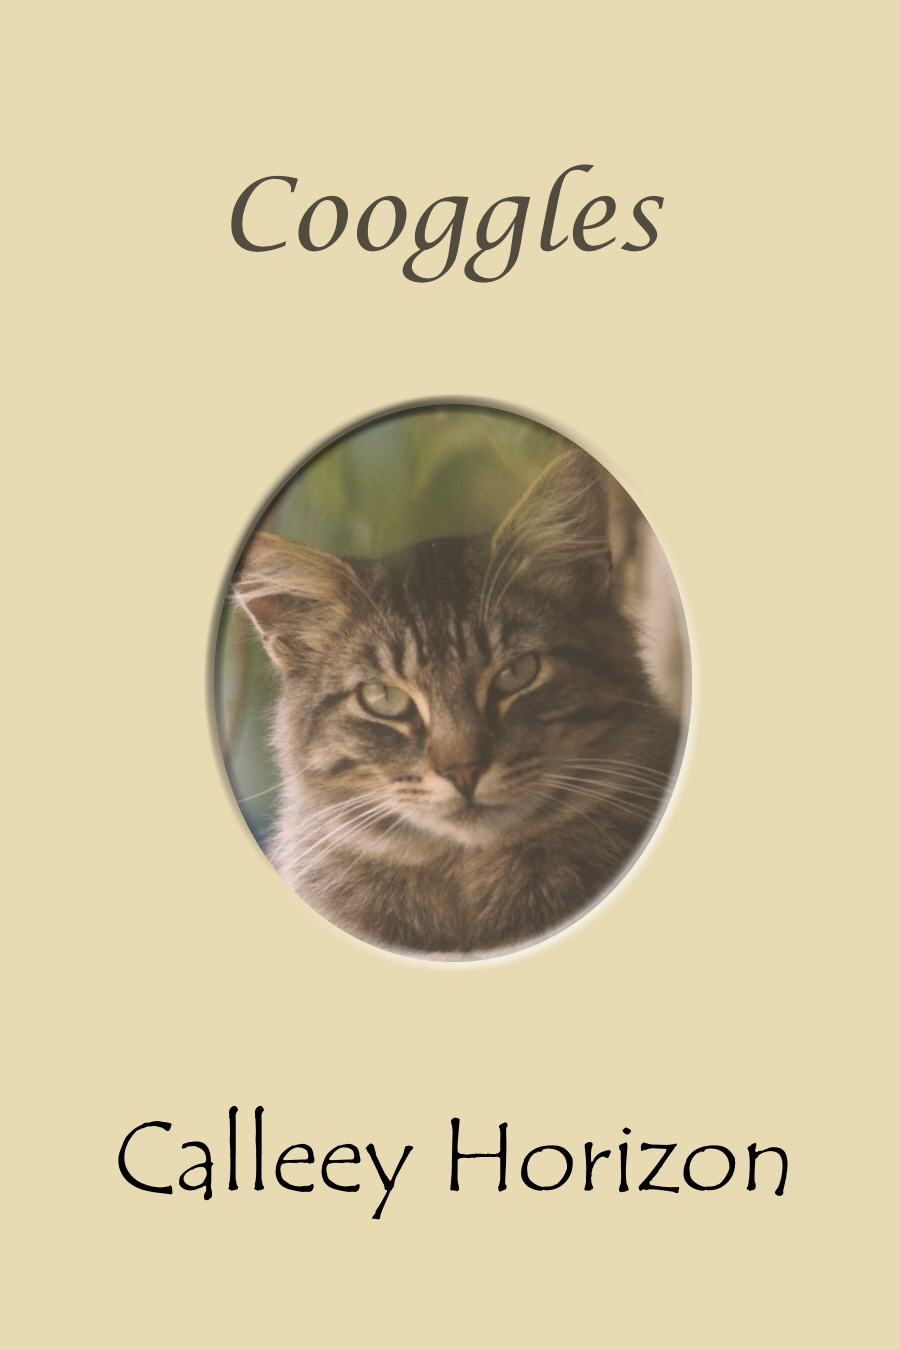 Cooggles Book Cover